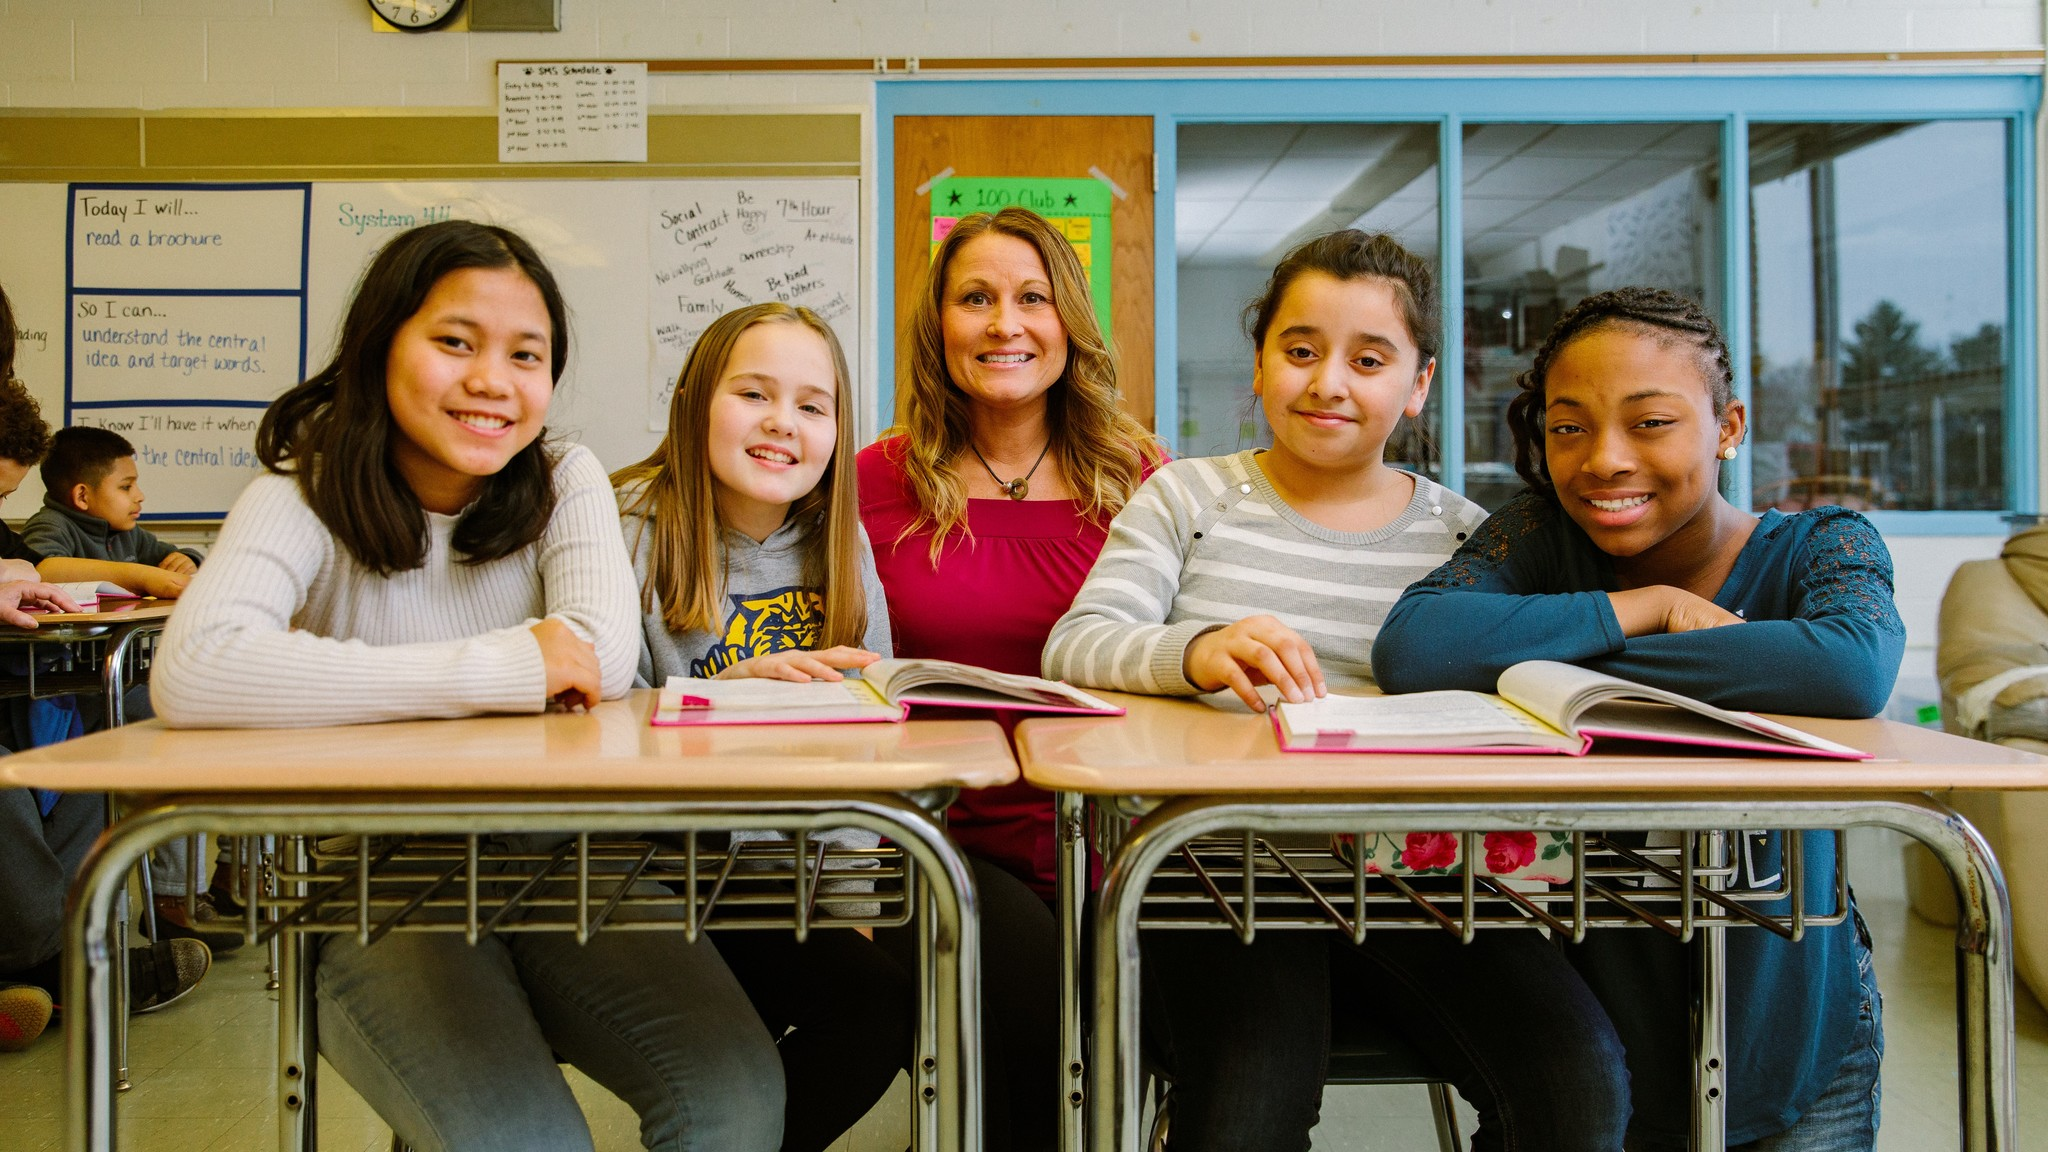 A middle school teacher and four students at their desks smiling